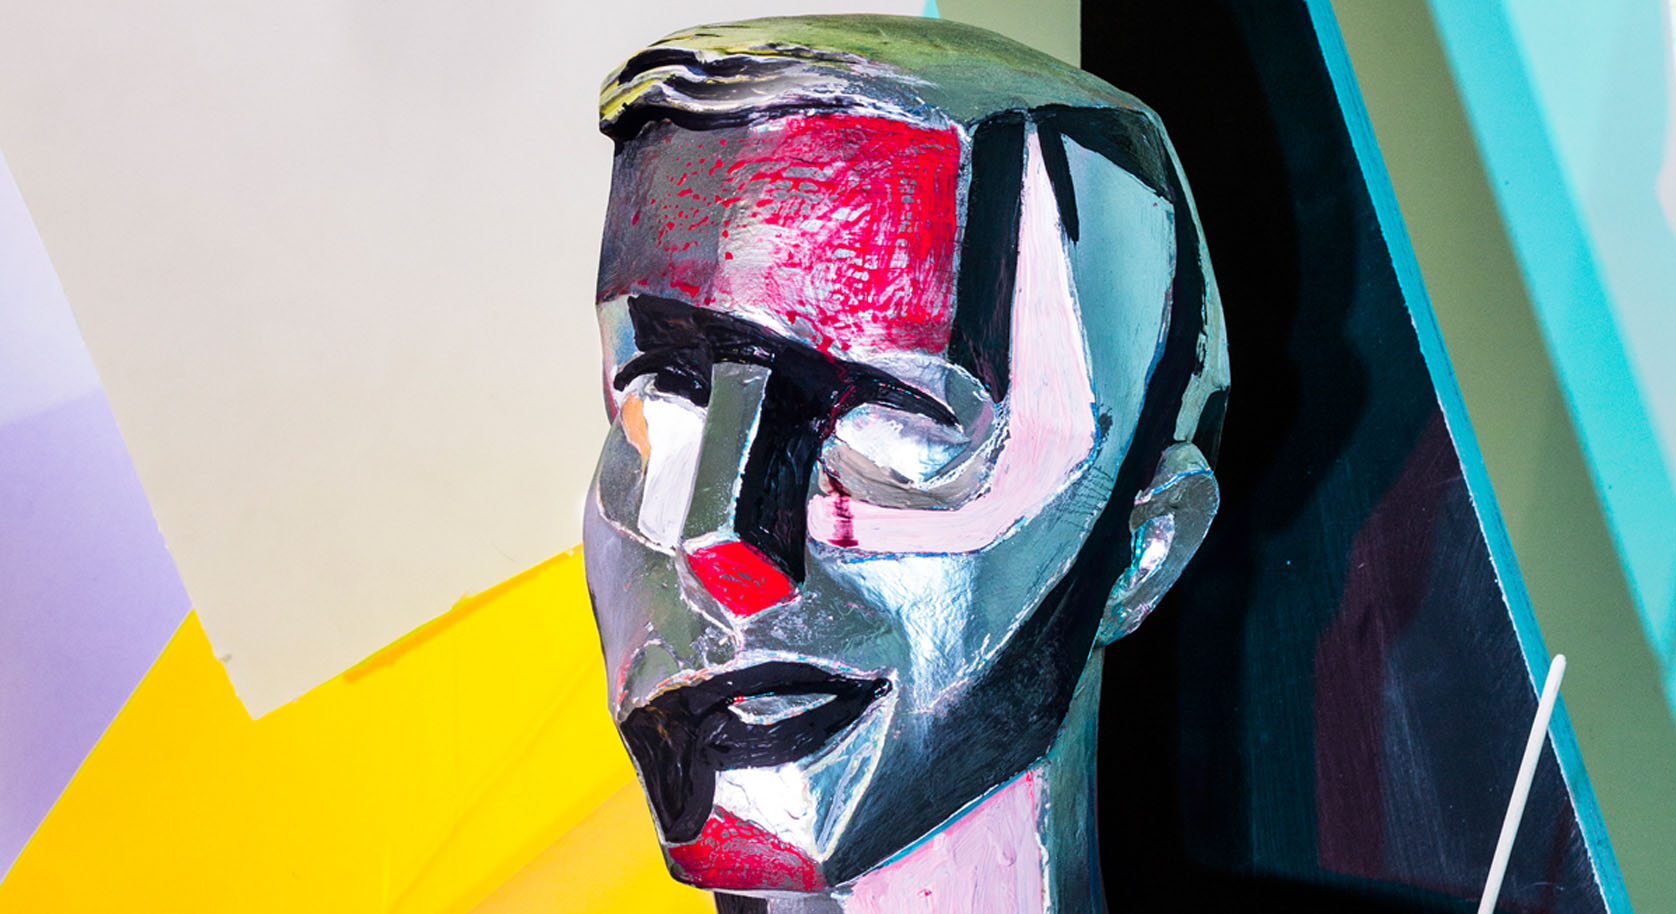 Painted-plaster-head-Self-portrait-of-a-man-in-reddetail-2015-©-Peter-Puklus